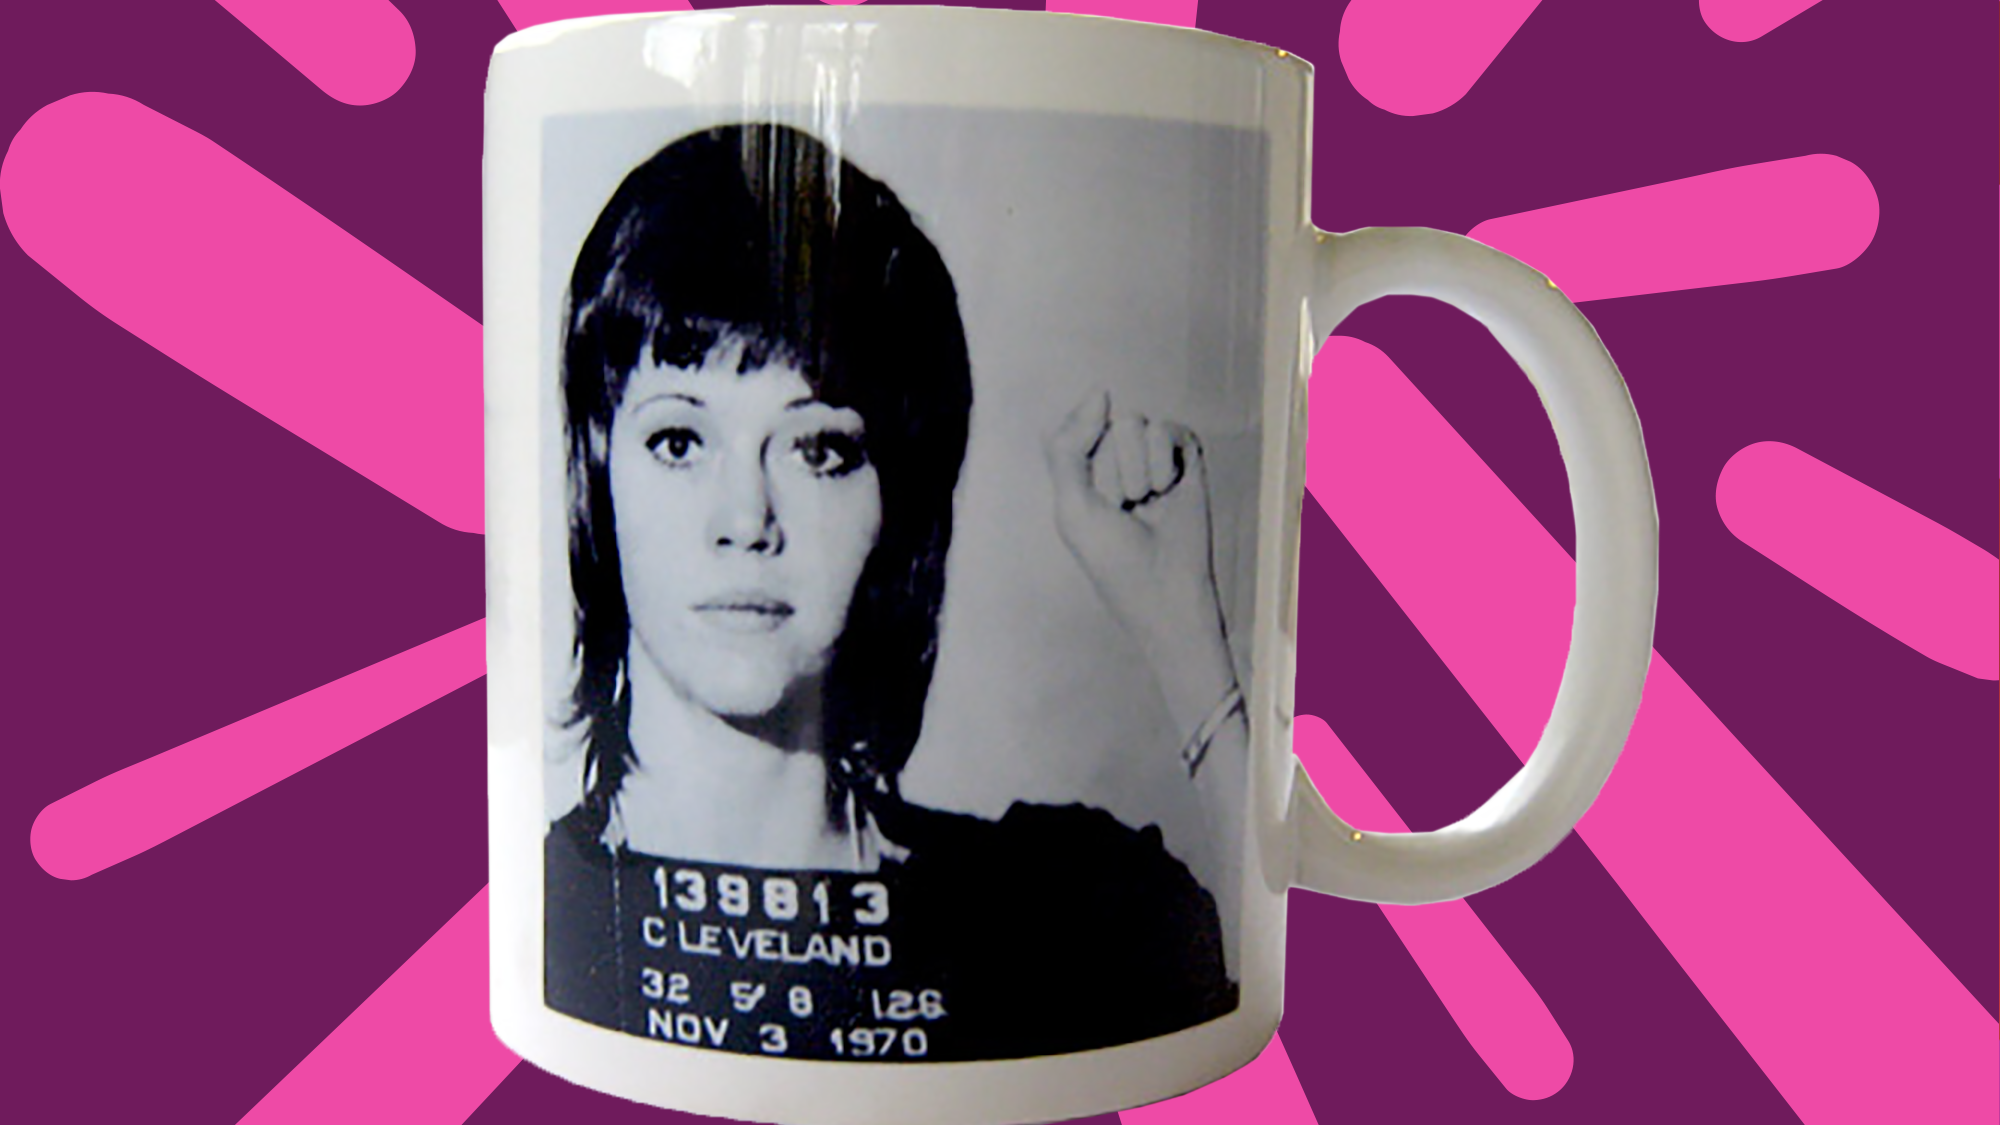 jane fonda merchandise uses mug shot from  arrest -